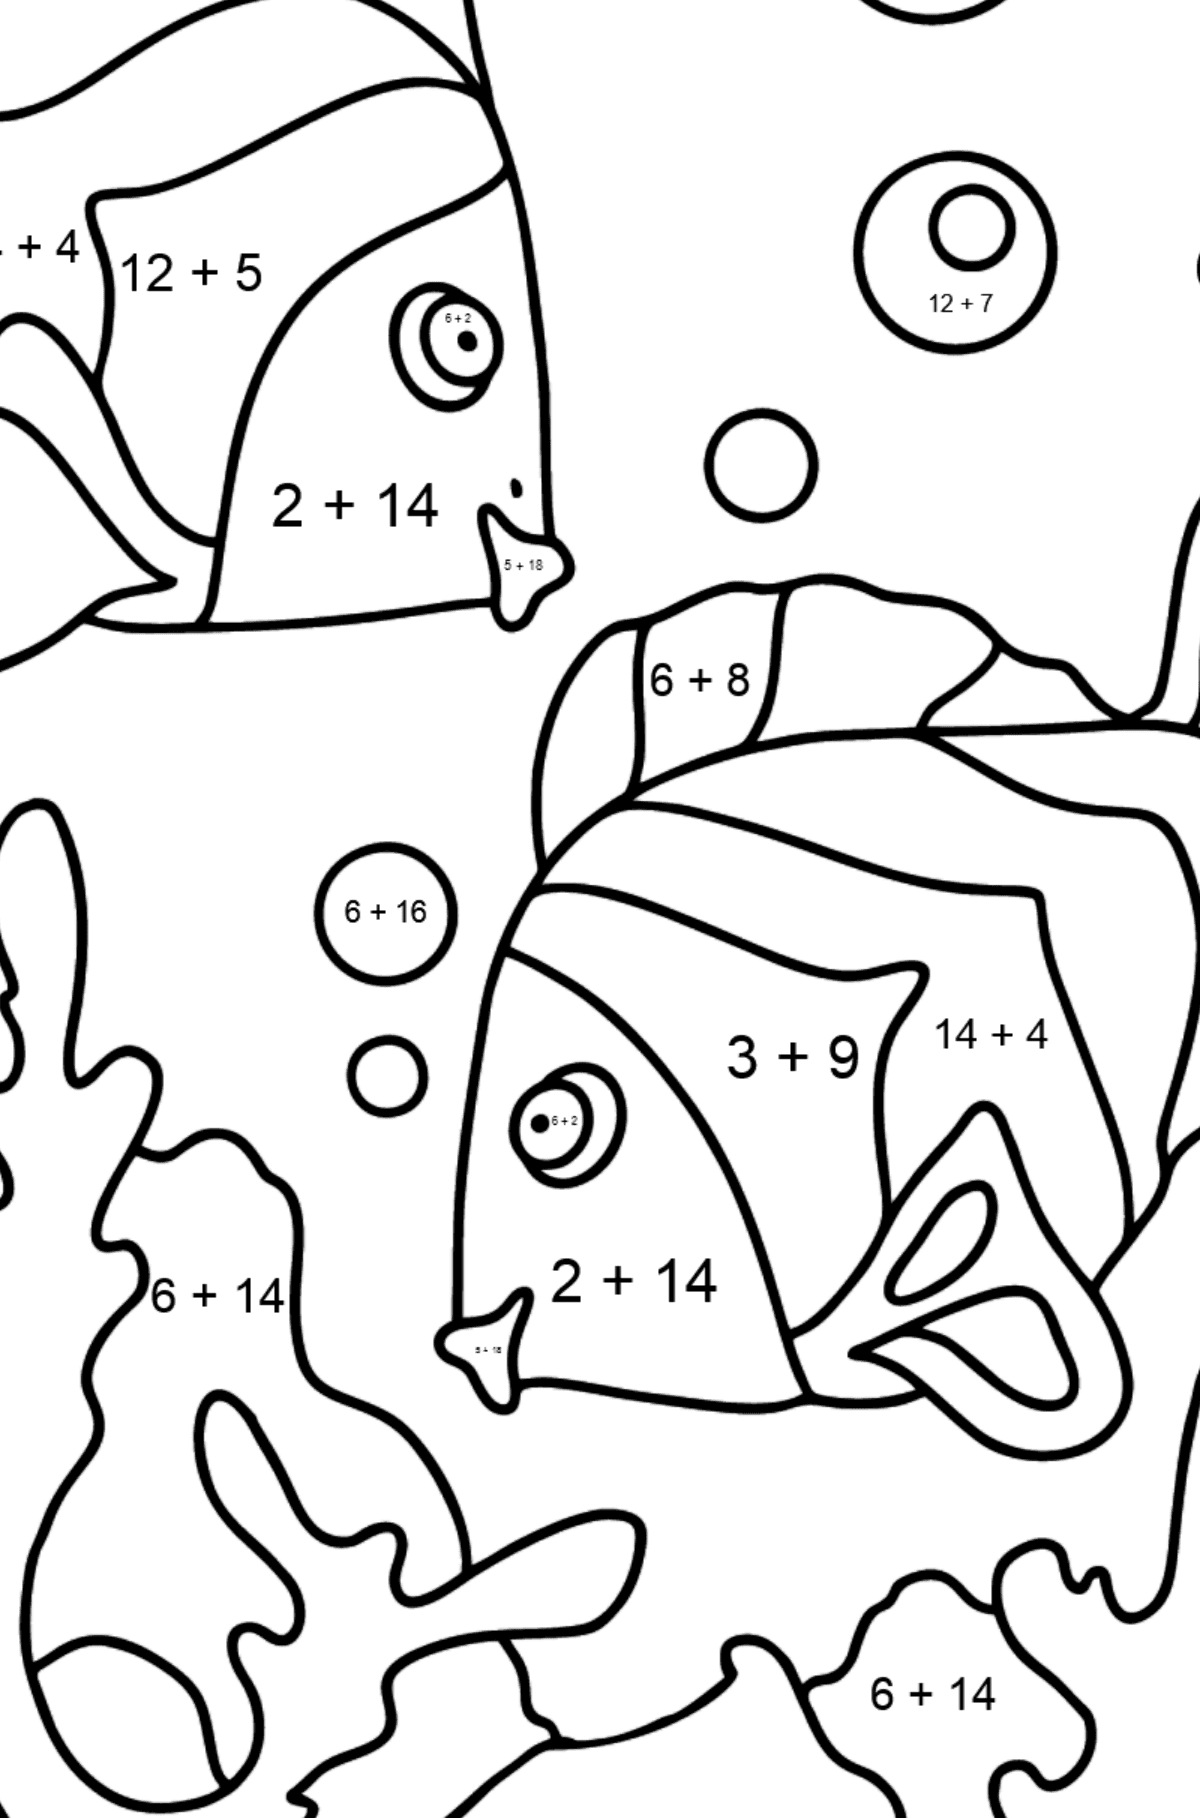 Coloring Page - Fish are Swimming Together - Math Coloring - Addition for Kids